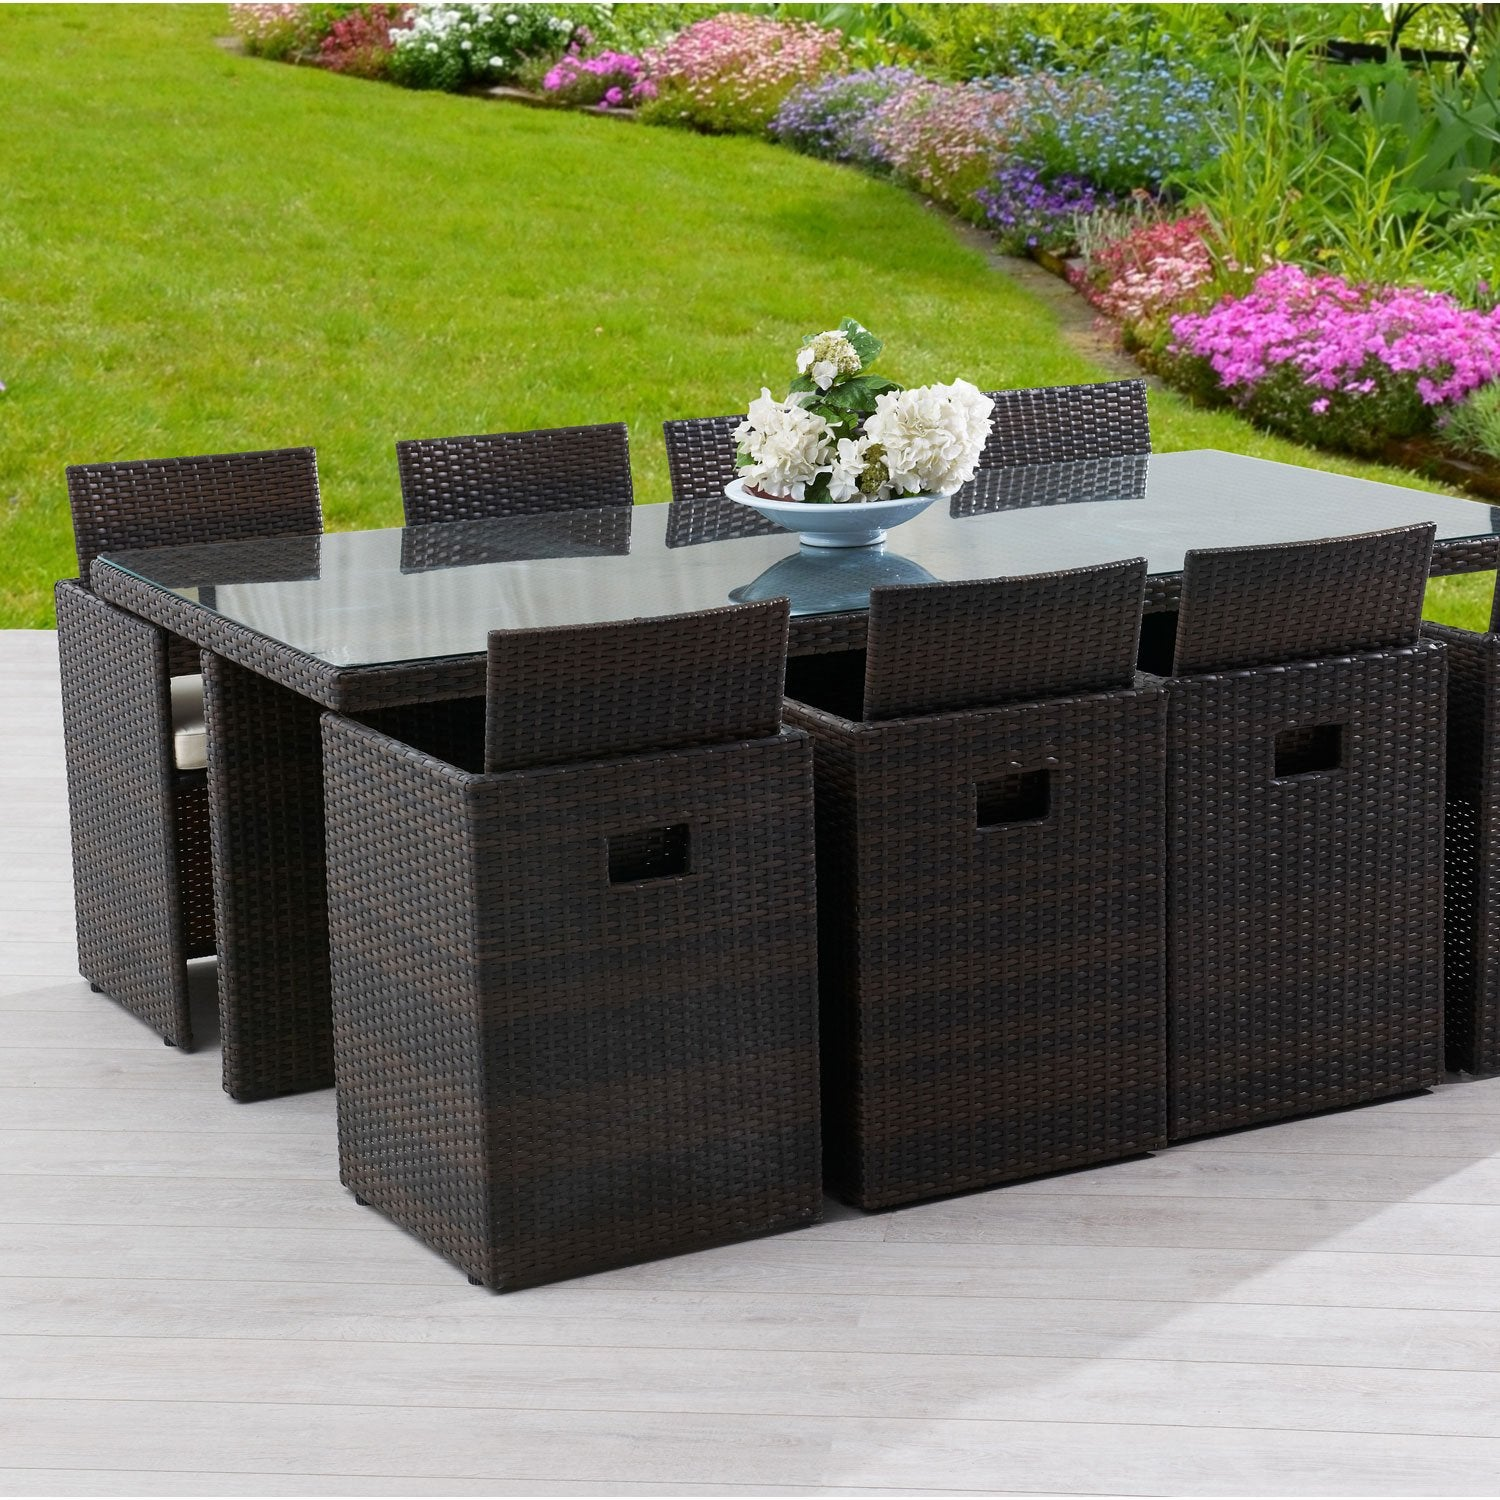 Salon de jardin encastrable r sine tress e marron 1 table for Salon de jardin leroy merlin resine